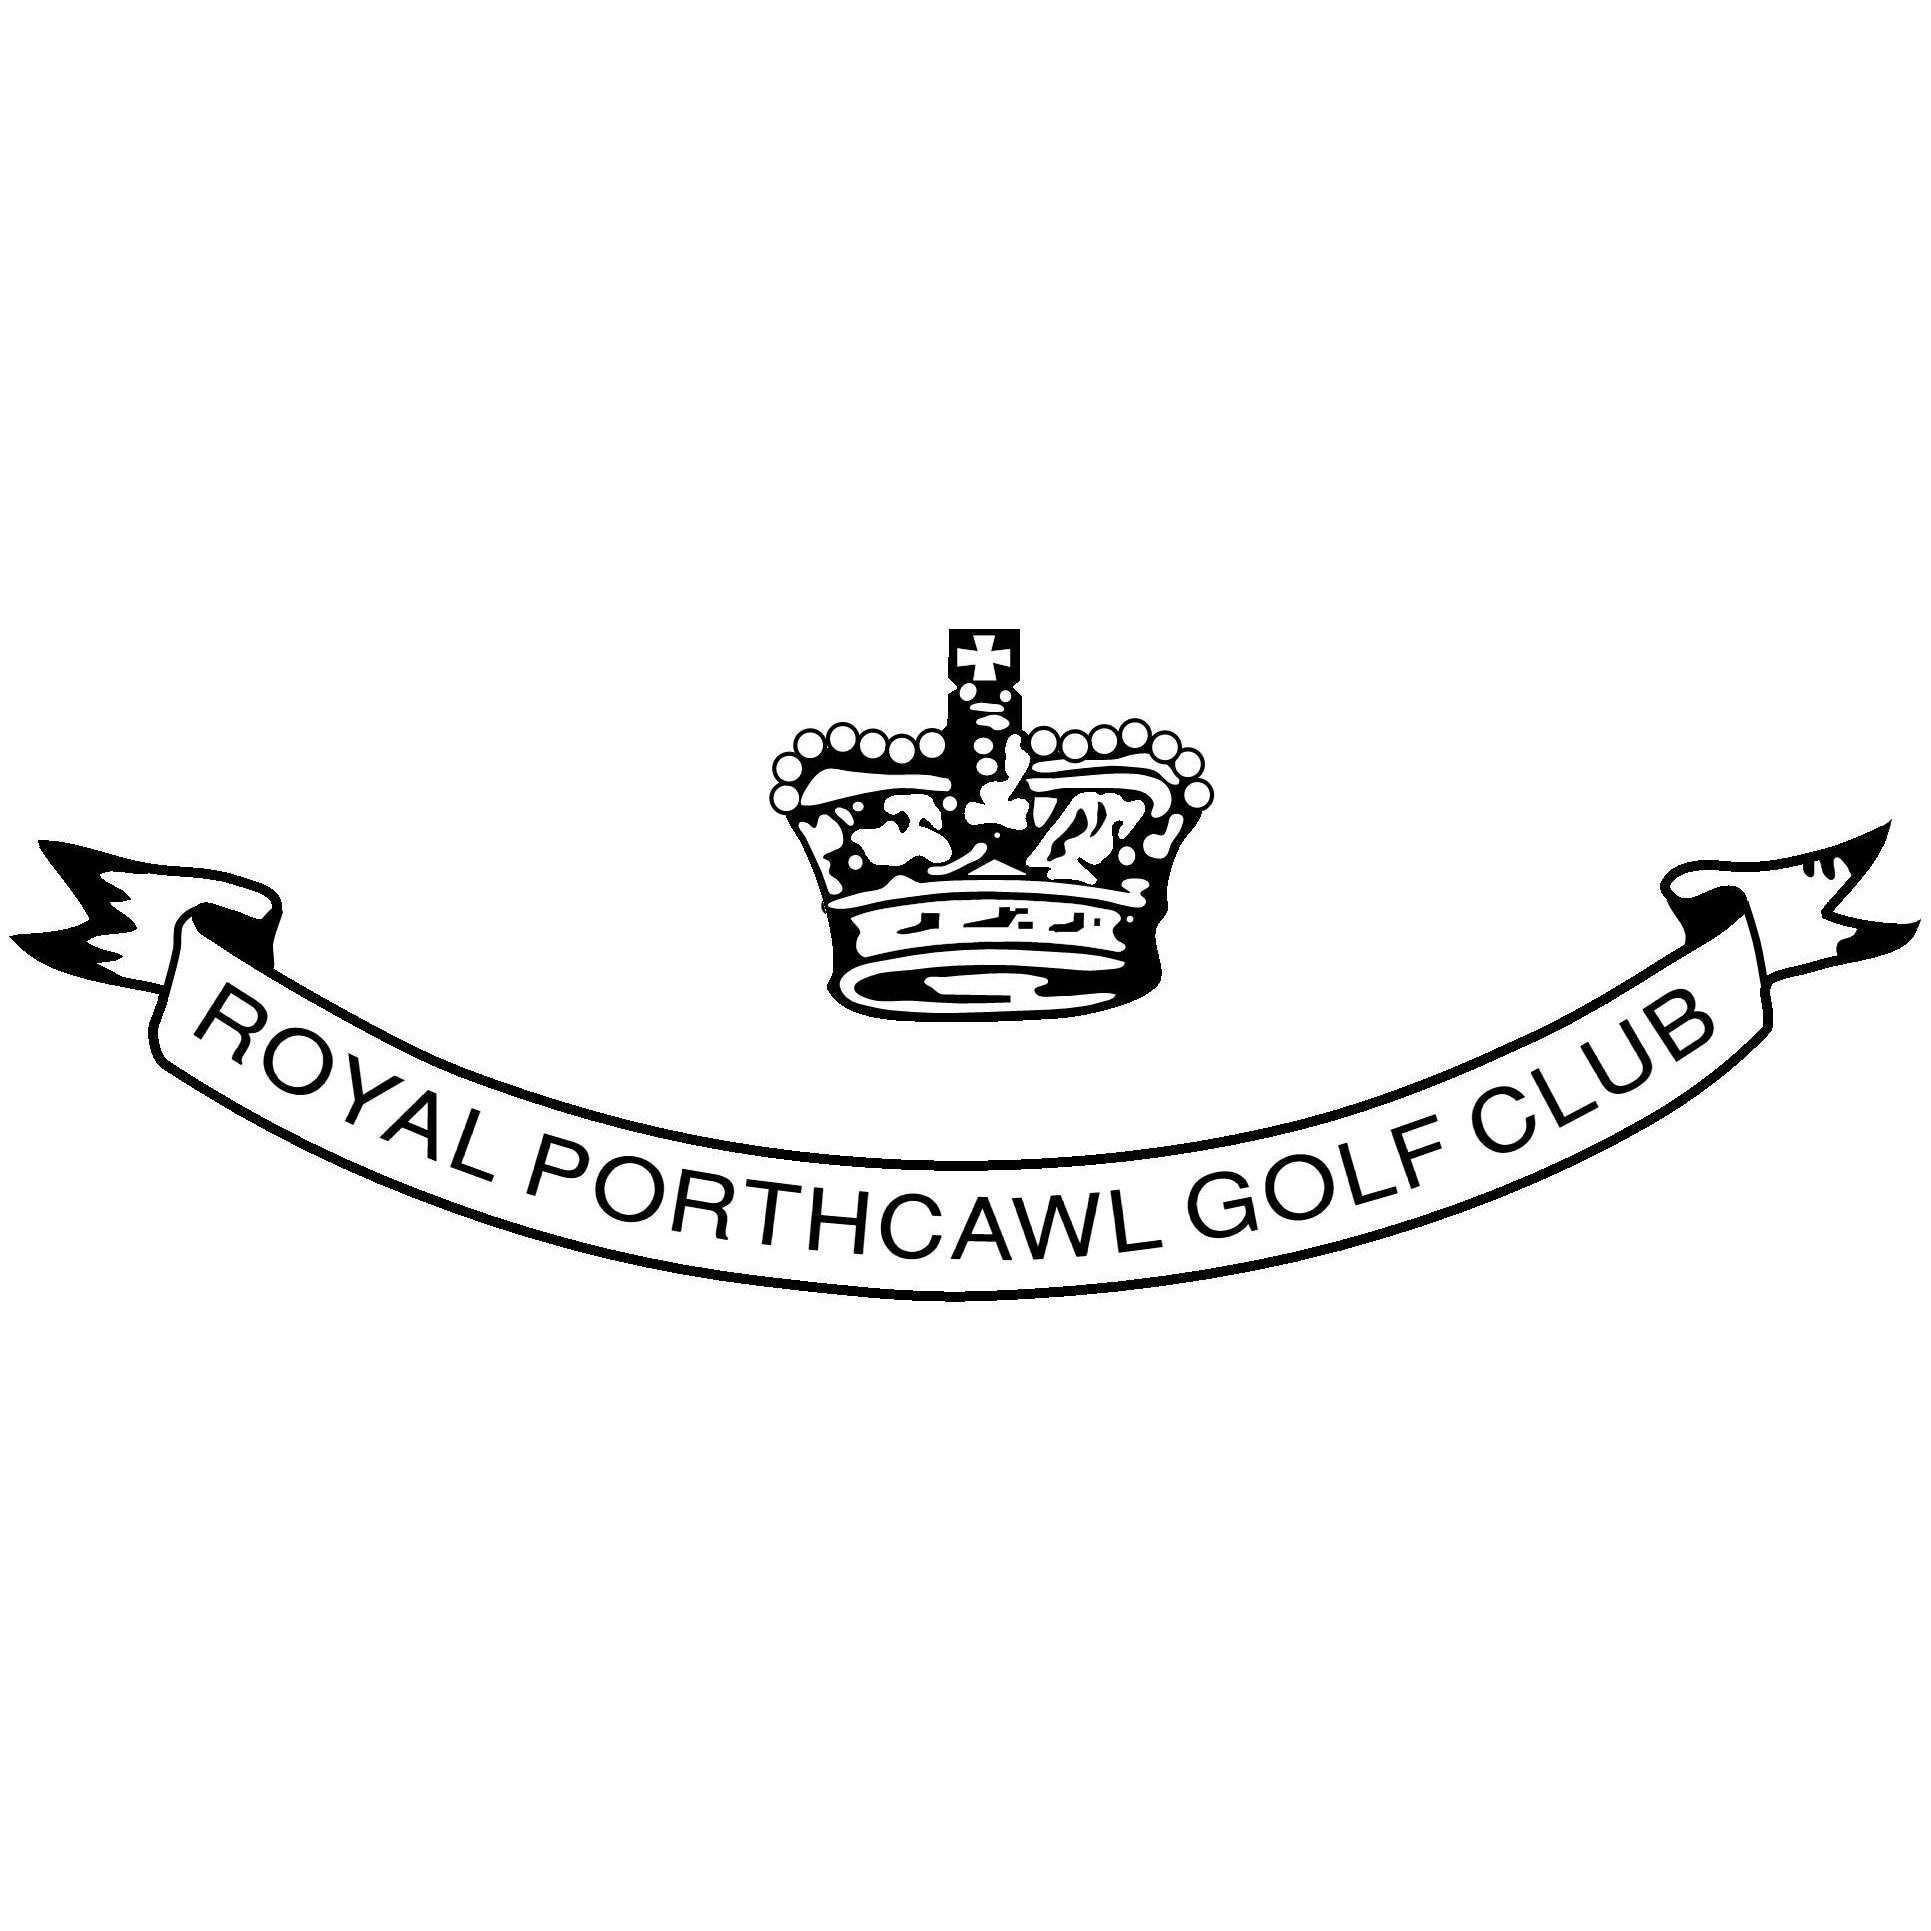 1931x1931 Royal Porthcawl Golf Club